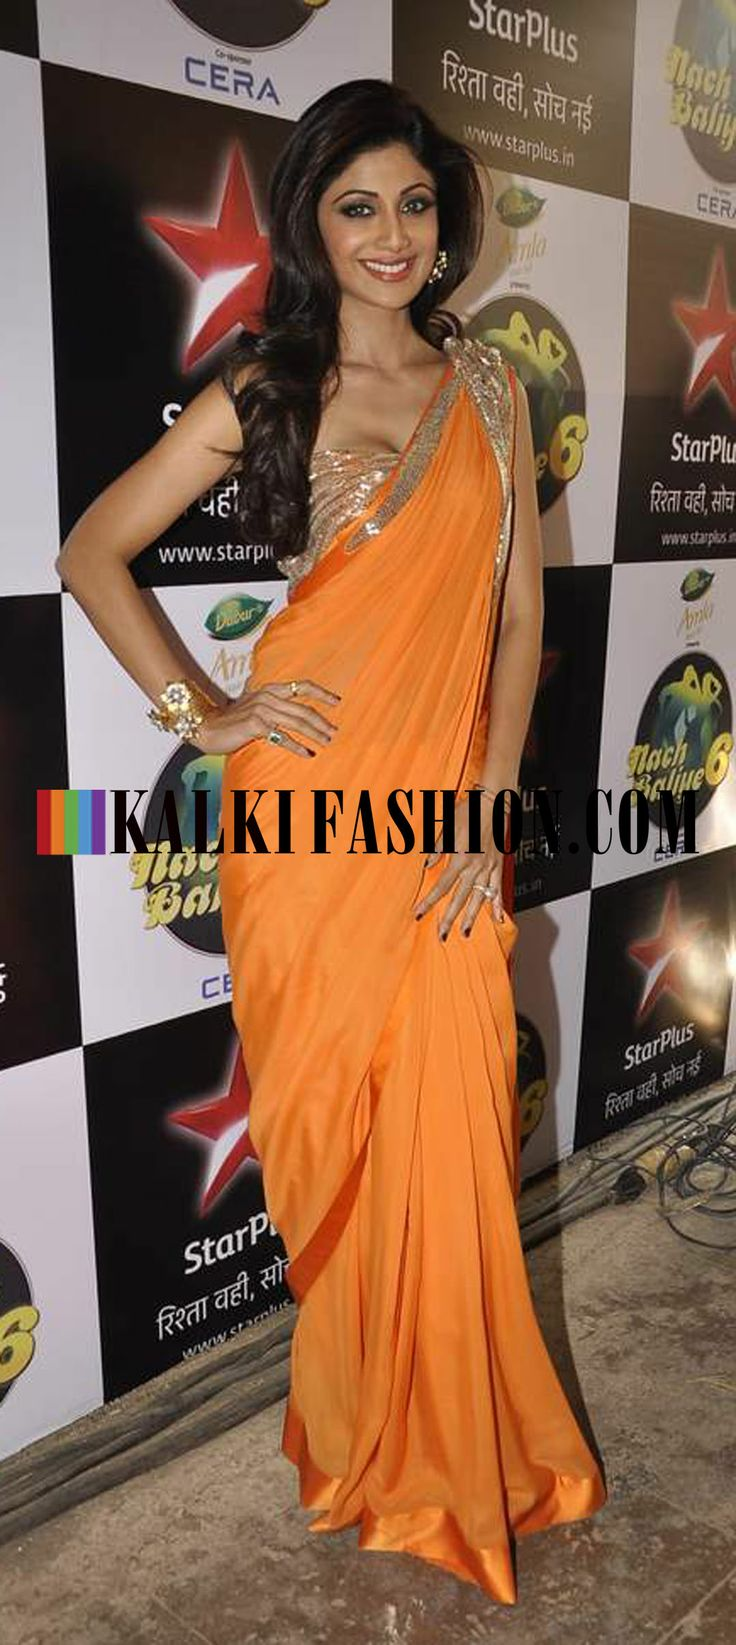 http://www.kalkifashion.com/ Shilpa Shetty poses in an orange Gaurav Gupta saree on the set of Nach Baliye